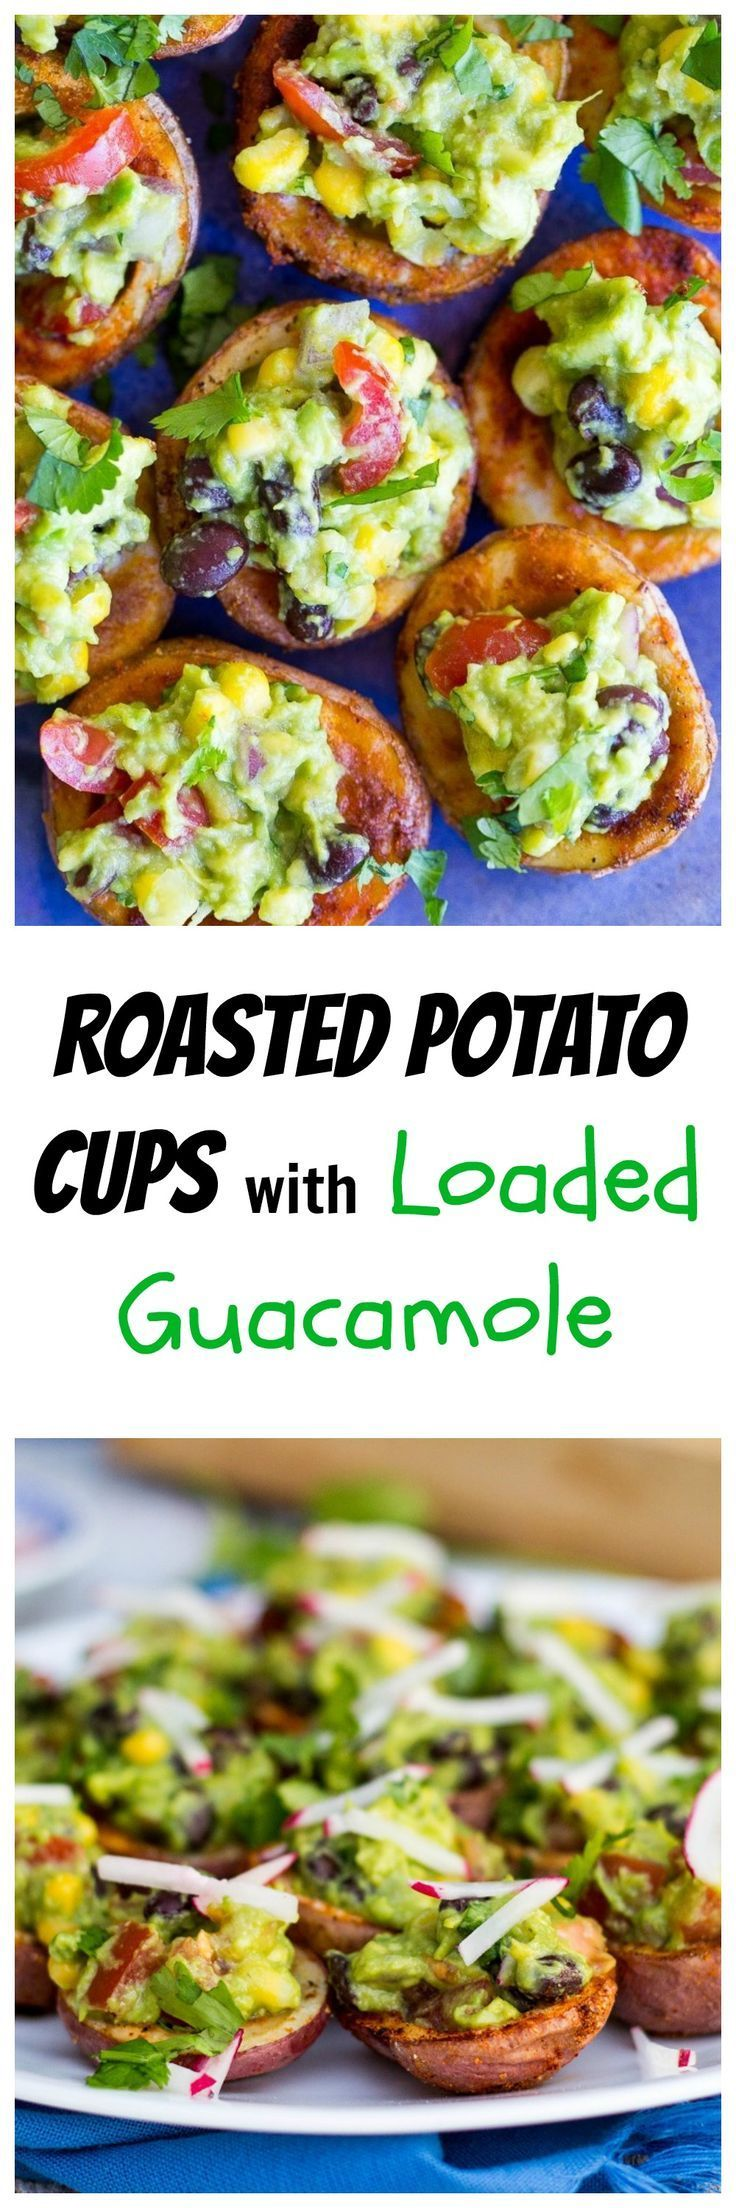 nice Roasted Potato Cups with Loaded Guacamole {gf+v} - She Likes Food